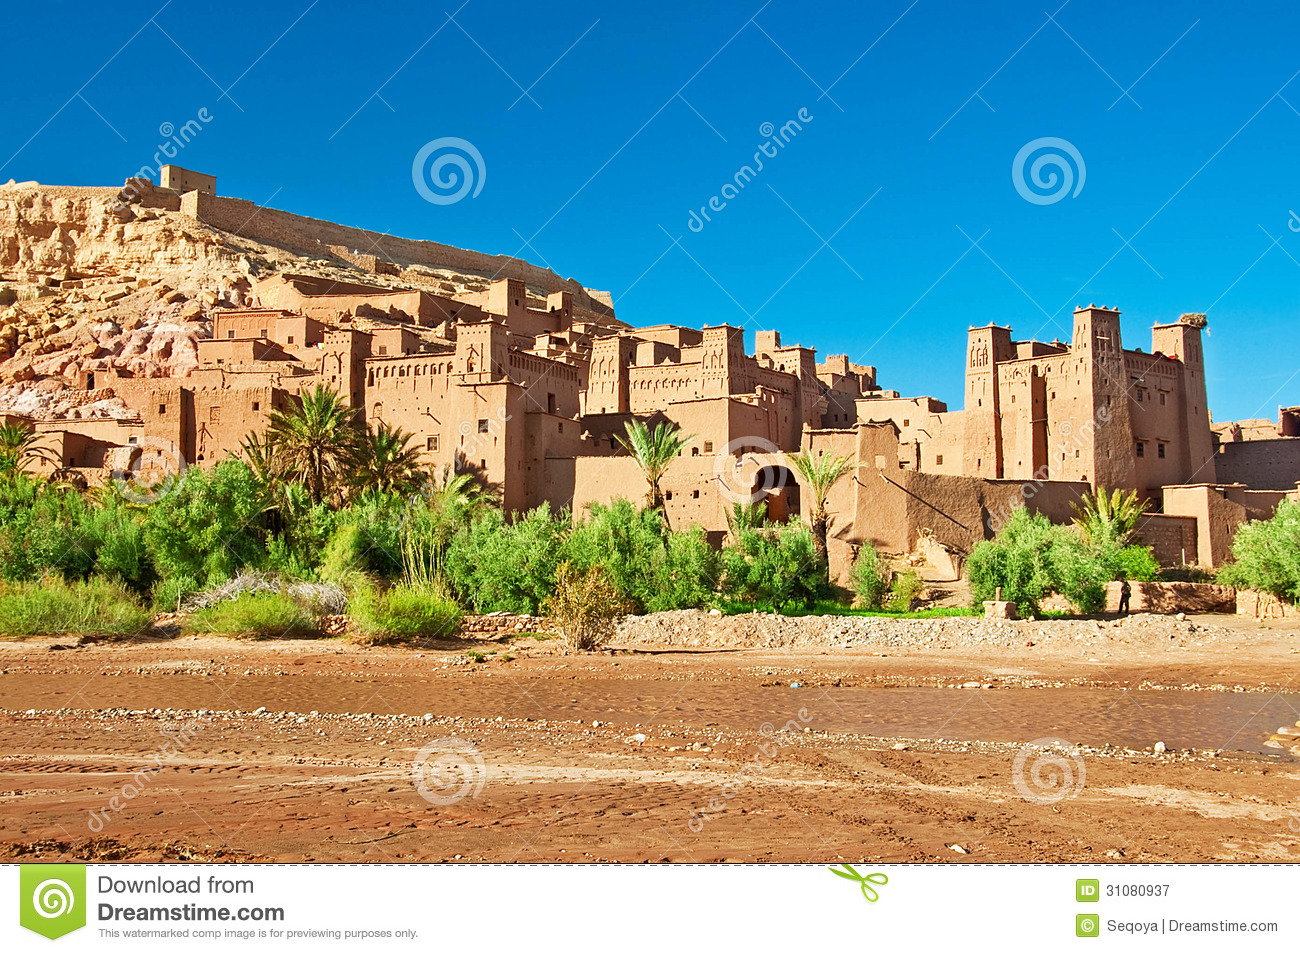 The clay city in the north of Africa